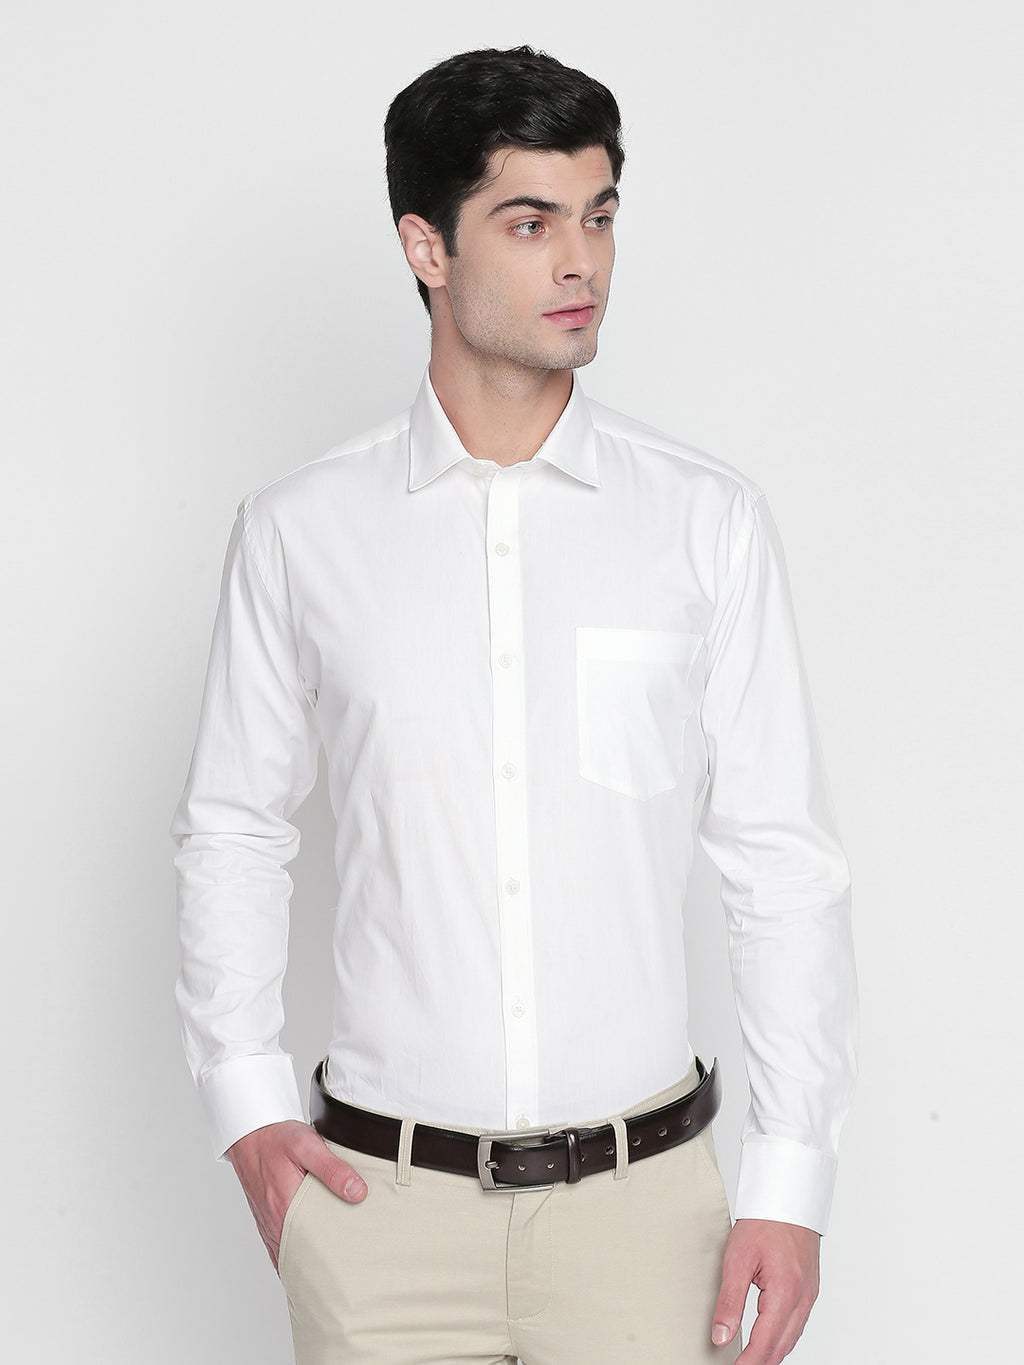 ZIDO Slim Fit Cotton Solid Shirt for Men's PL1443